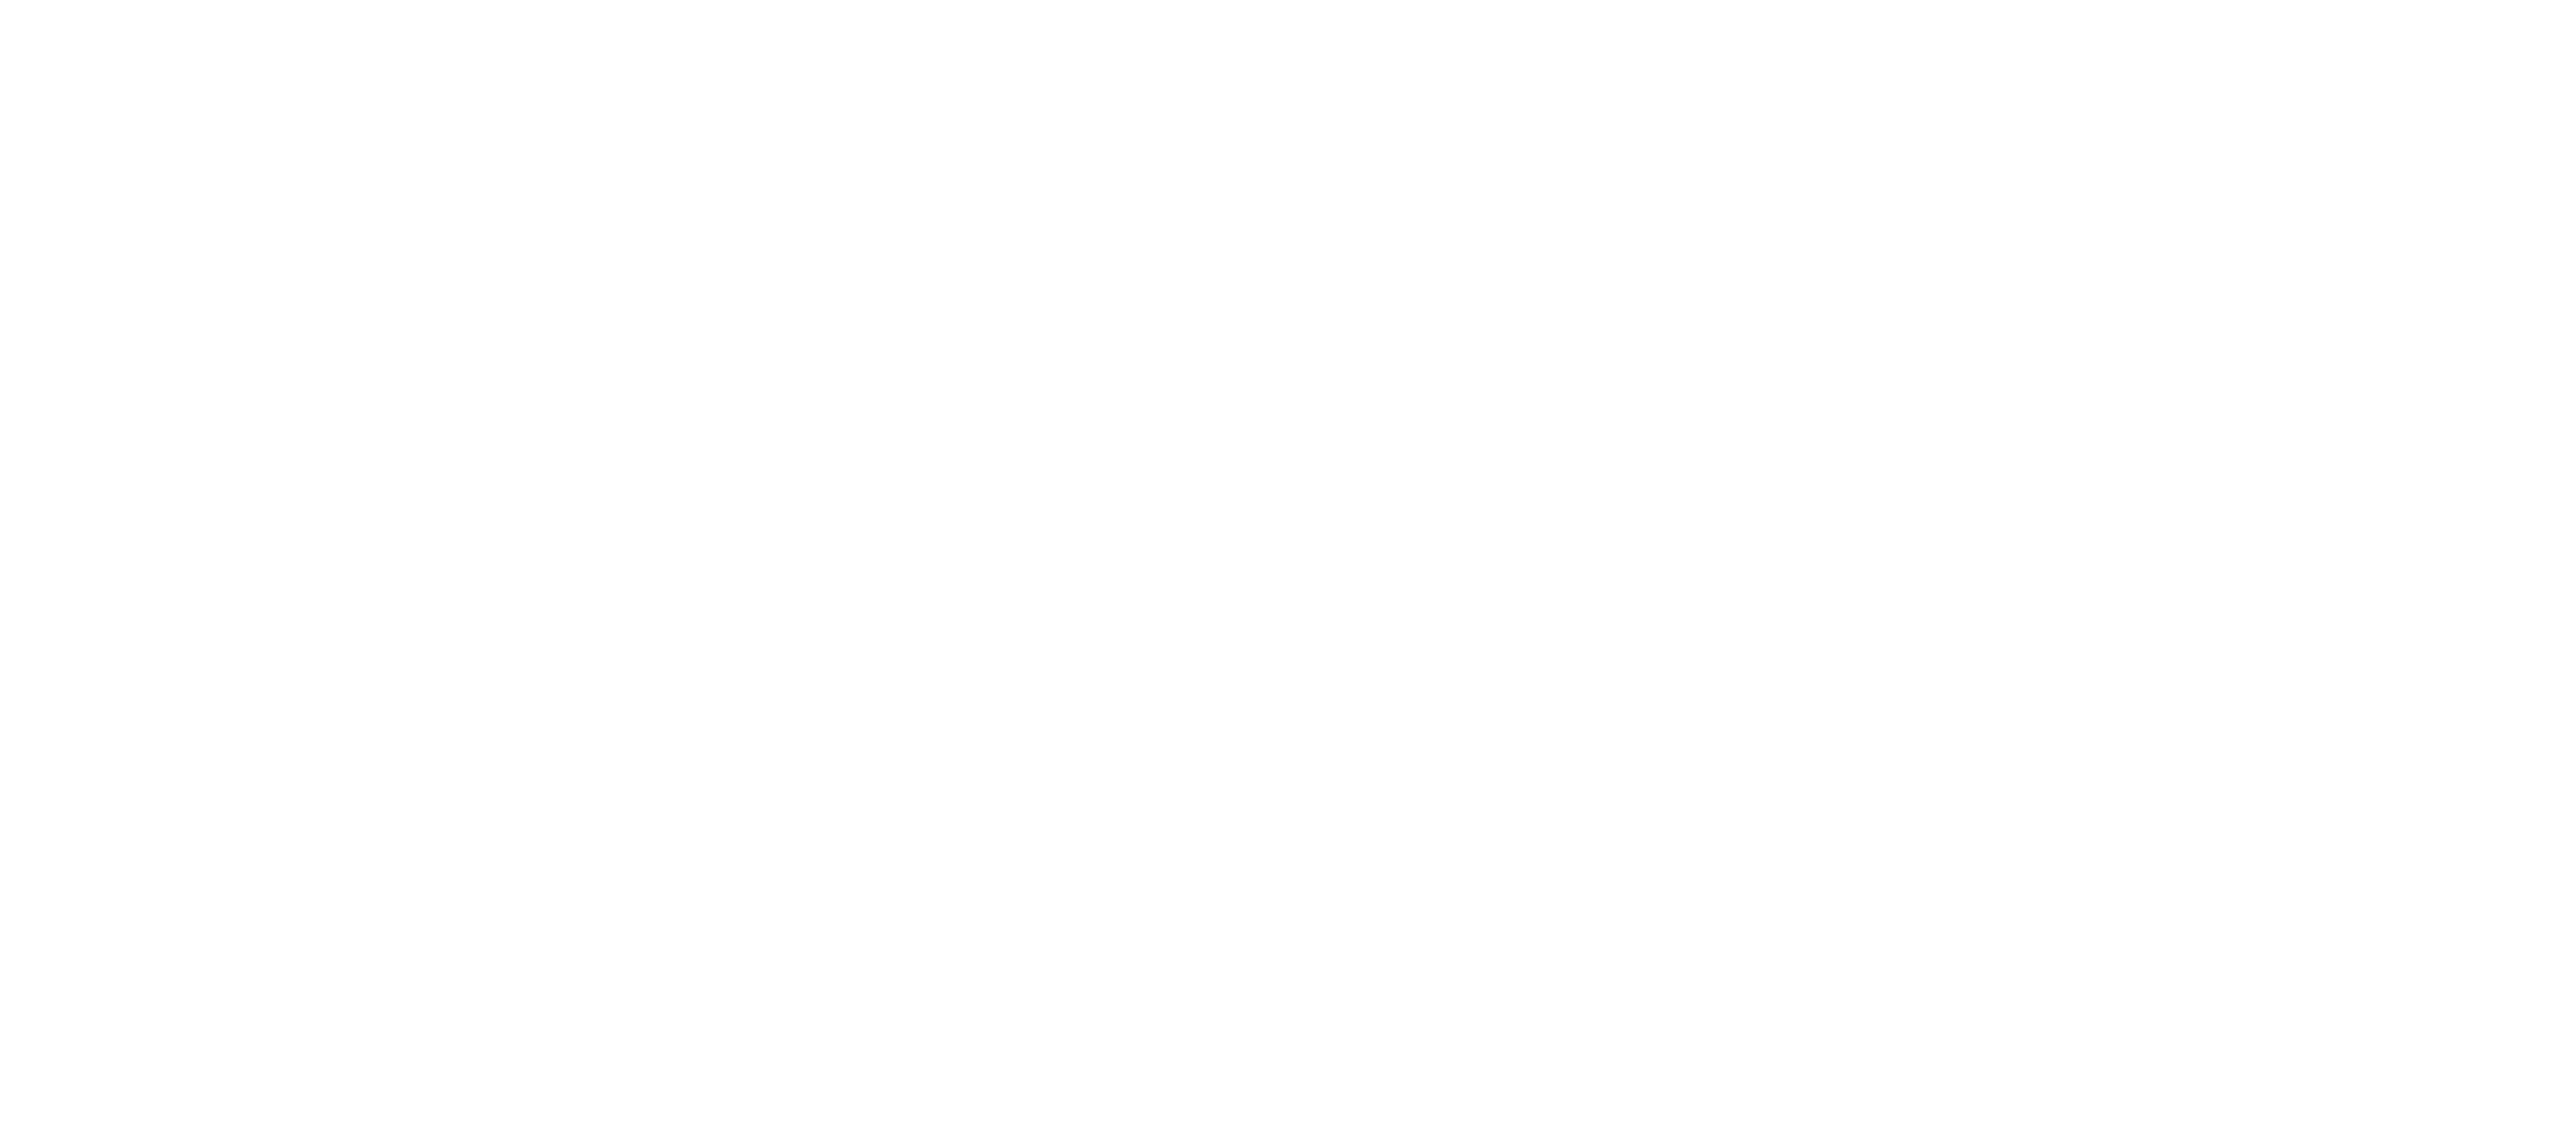 4 Brothers Contracting LLC